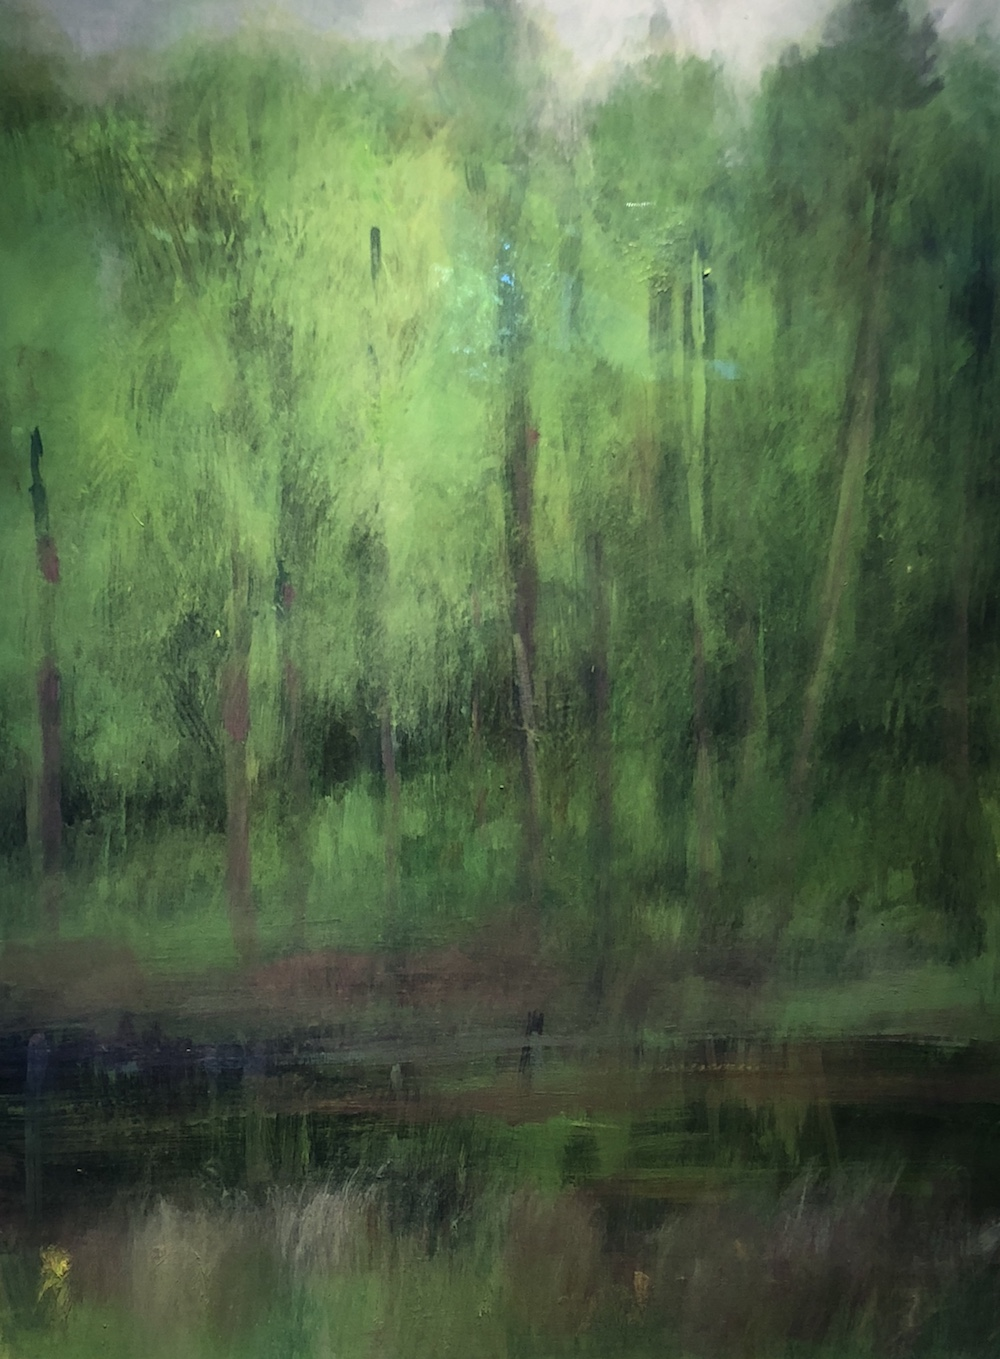 Woods by the River, June, Oil on canvas, 29 x 22""